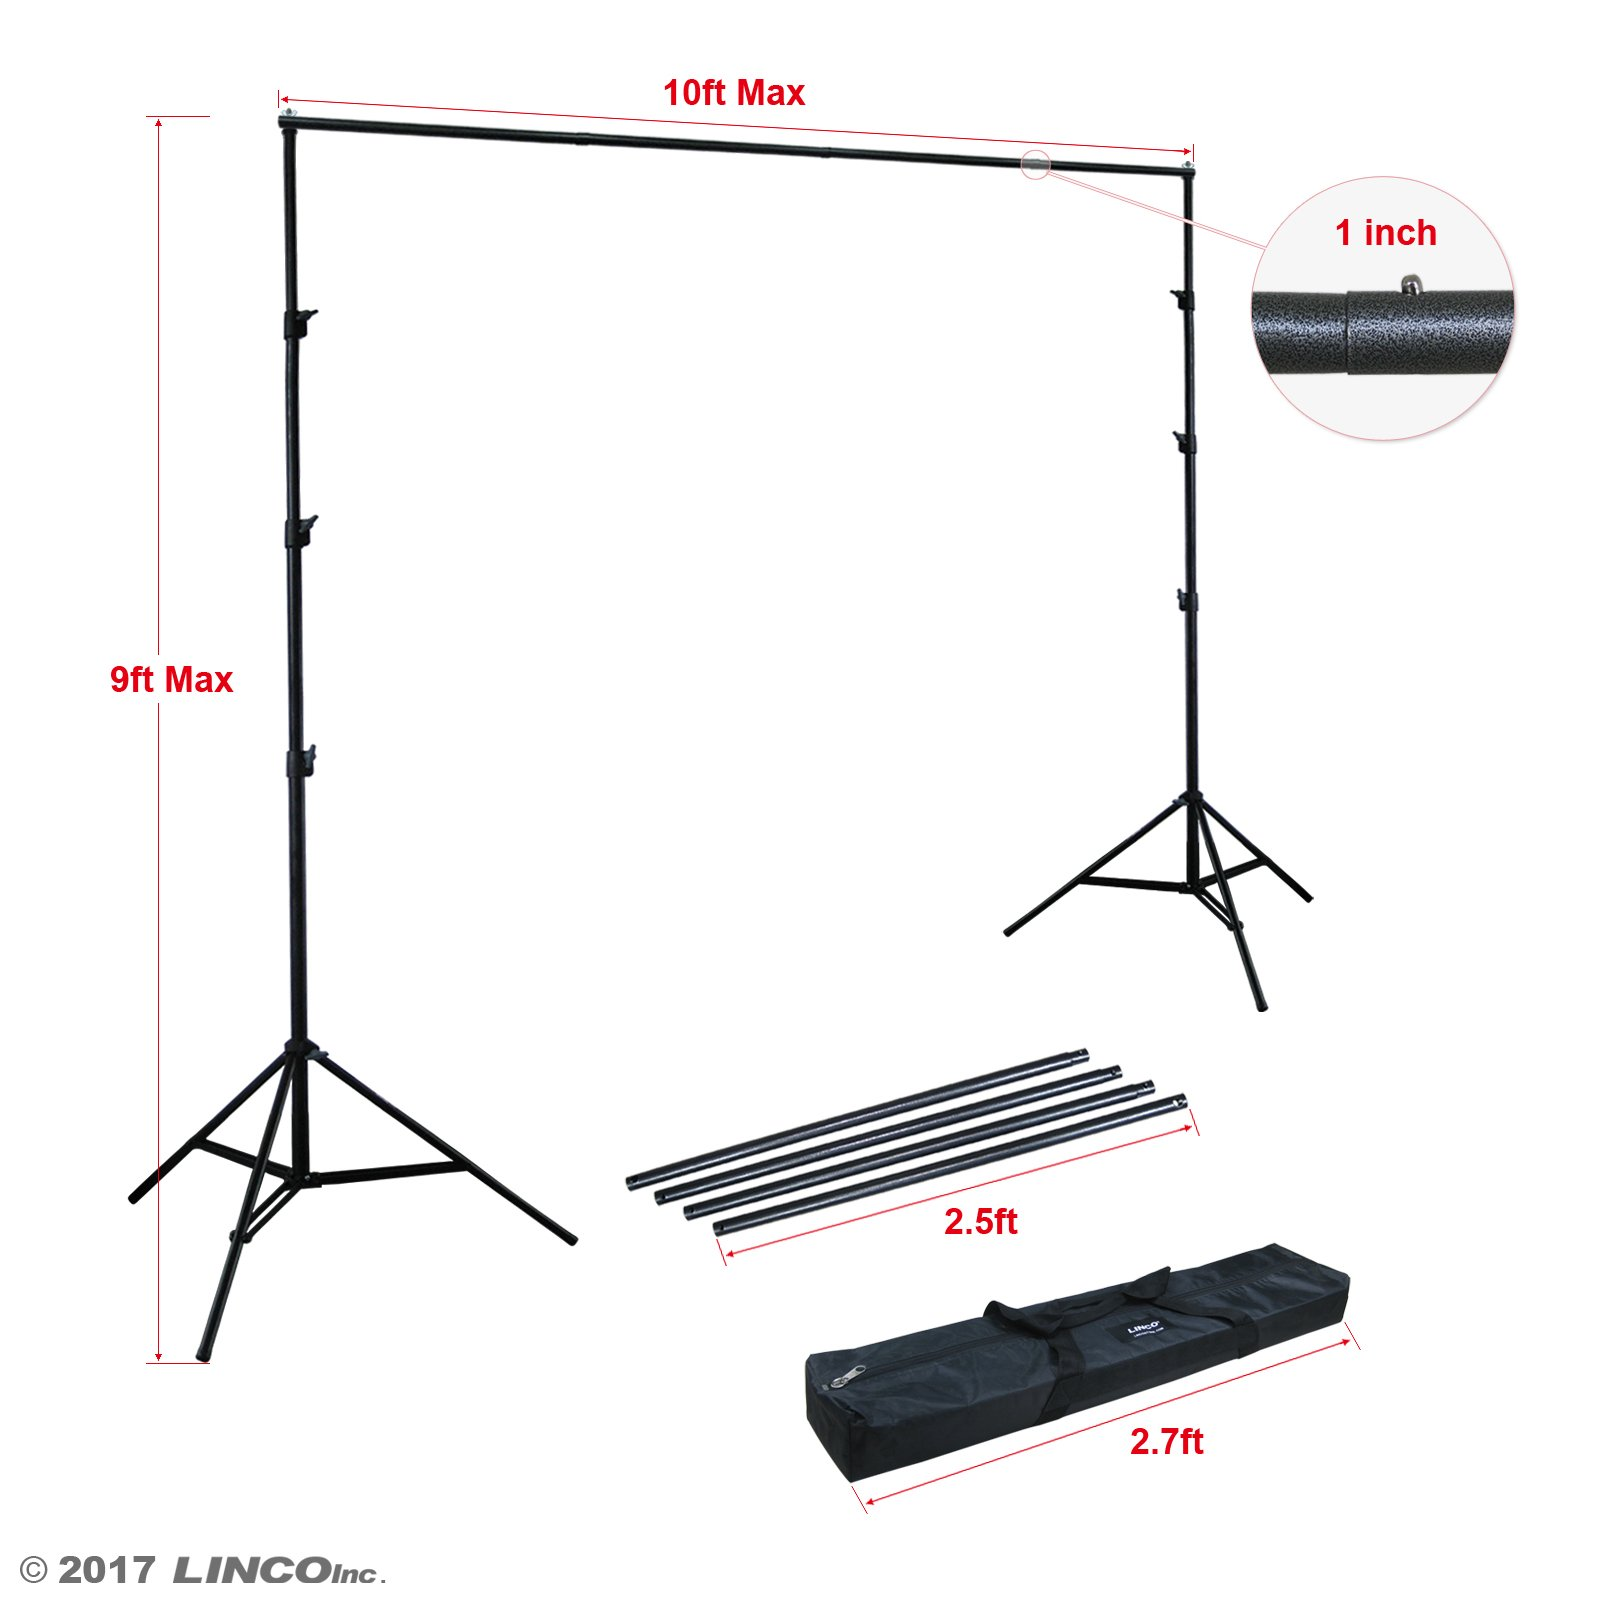 Linco Lincostore 9x10 ft Photography Photo Backdrop Stand Background Support System Kit 4154-4236 by Linco